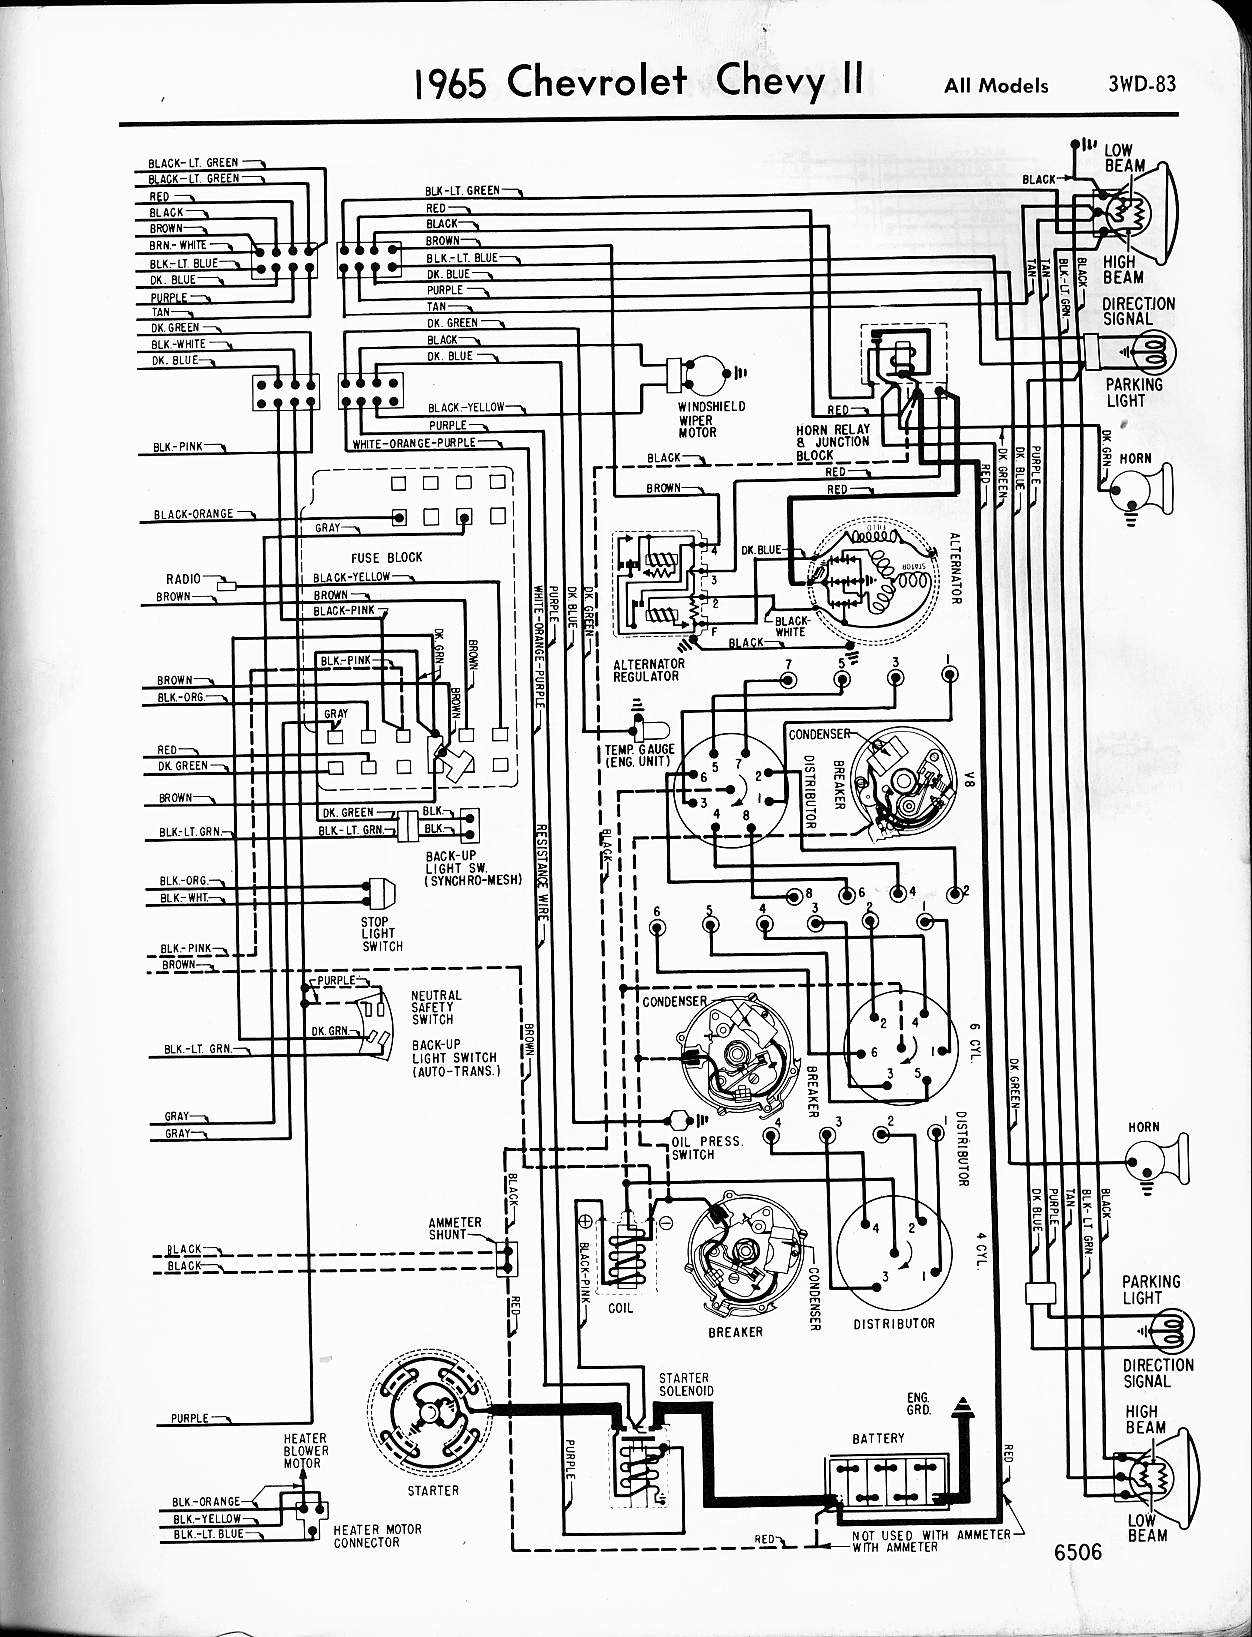 MWireChev65_3WD 083 57 65 chevy wiring diagrams 1965 chevy c10 wiring diagram at reclaimingppi.co